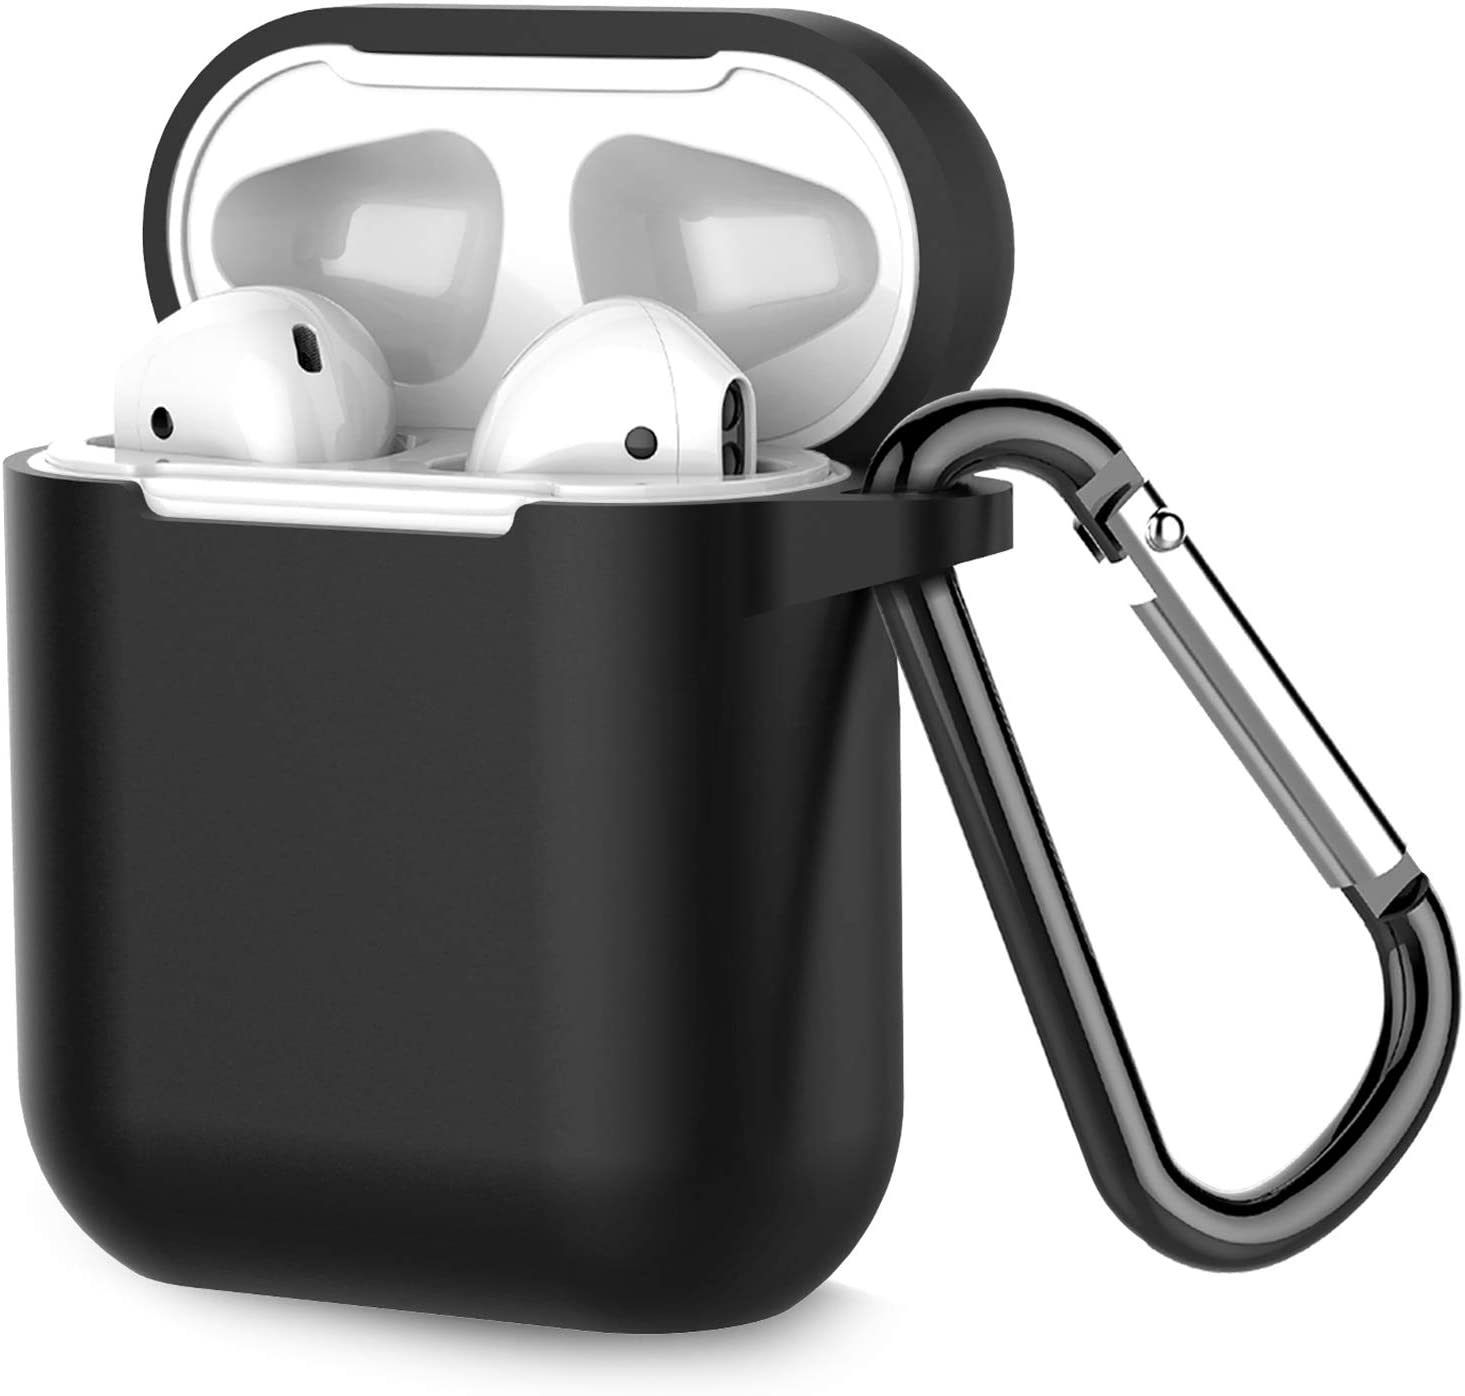 Airpods Case, Coffea AirPods Accessories Shockproof Case Cover Portable & Protective Silicone Skin Cover Case for Airpods 2 & 1 (Front LED Not Visible)(Black)